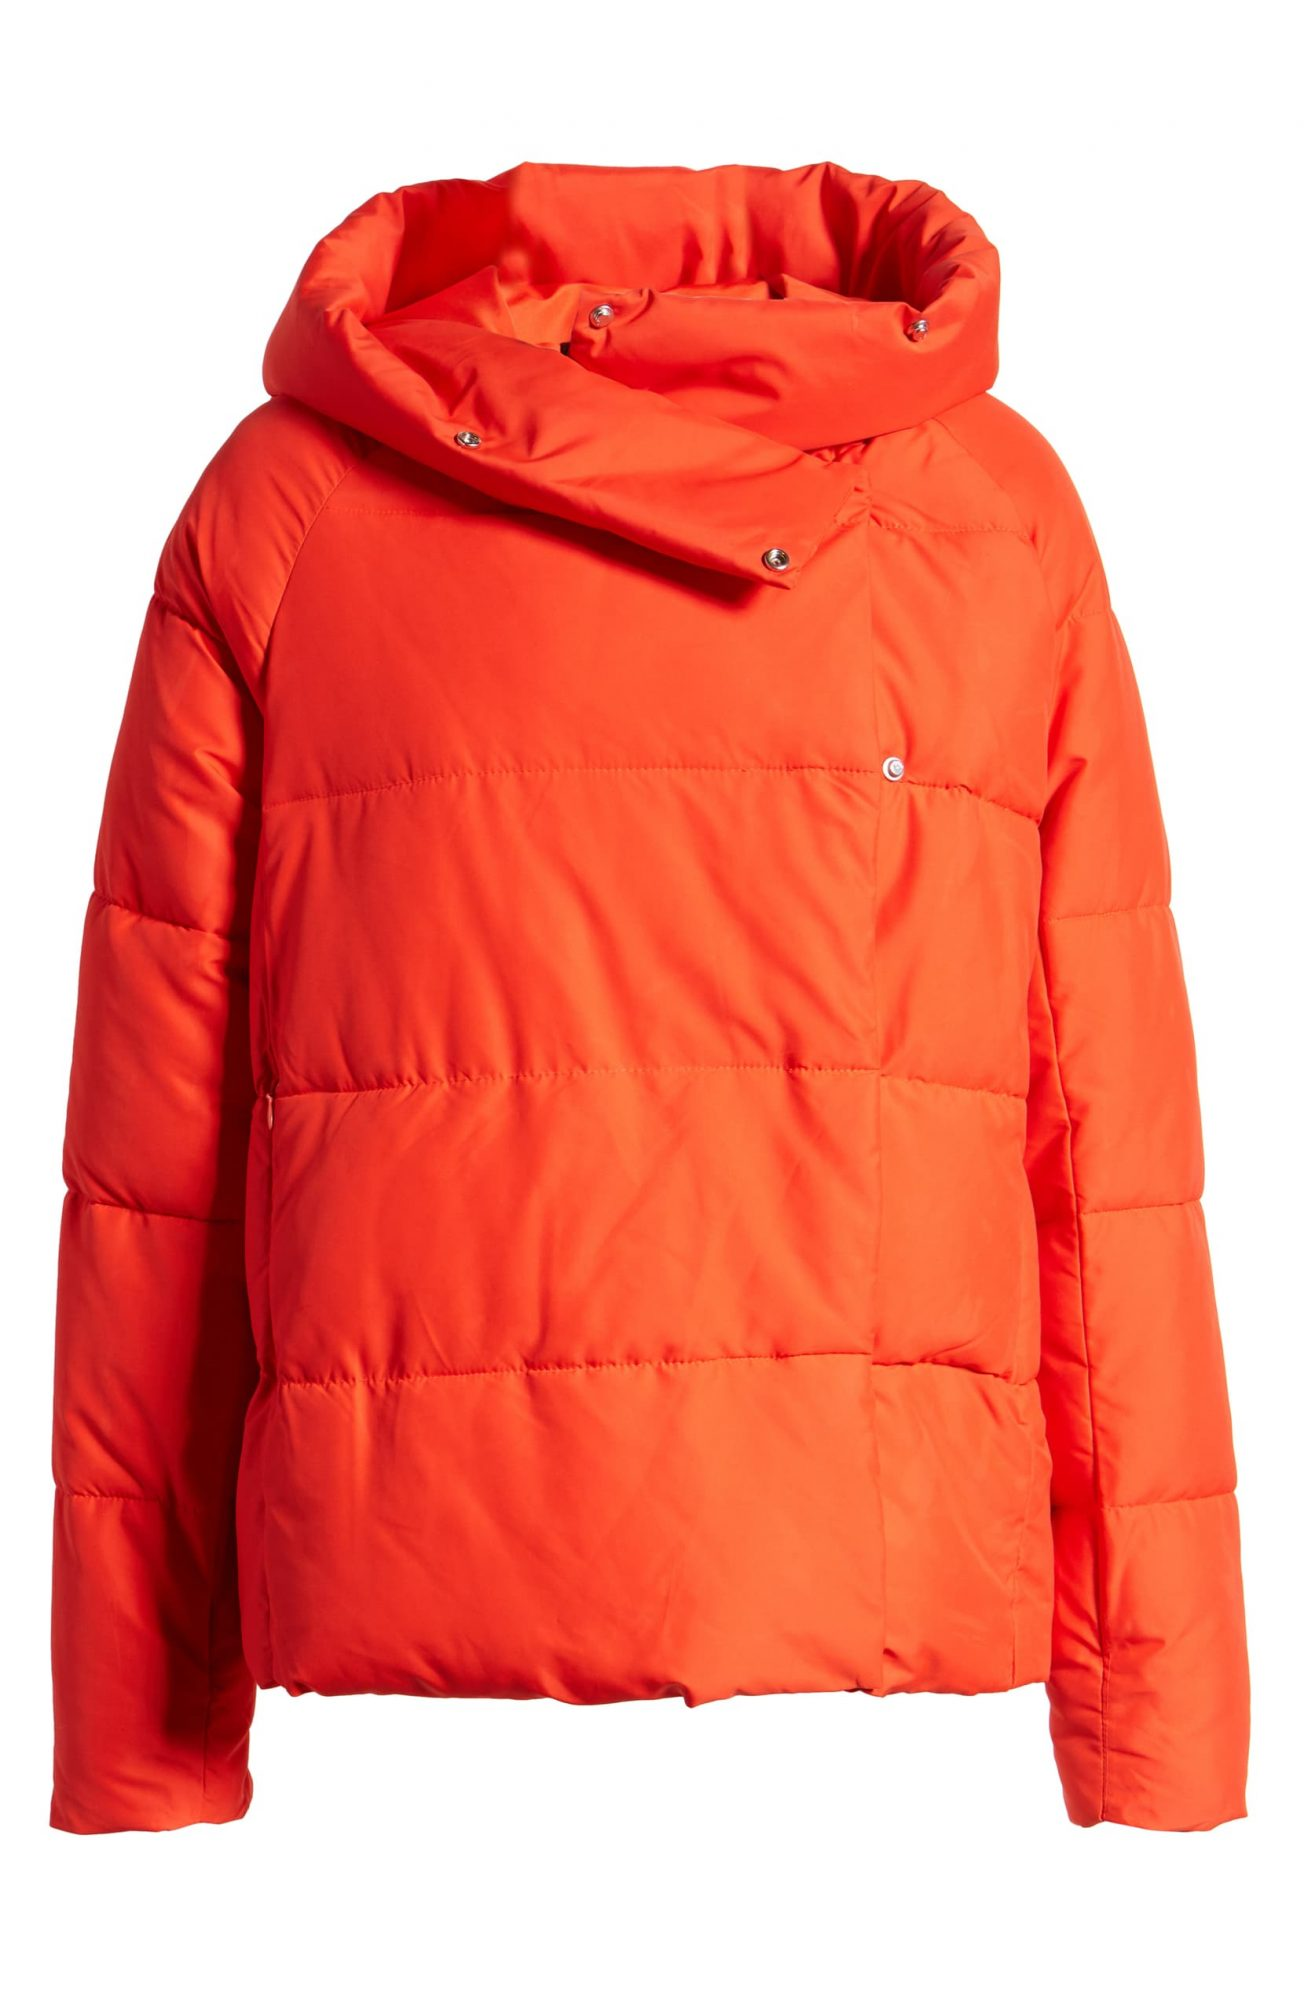 Only June Red Puffer Jacket